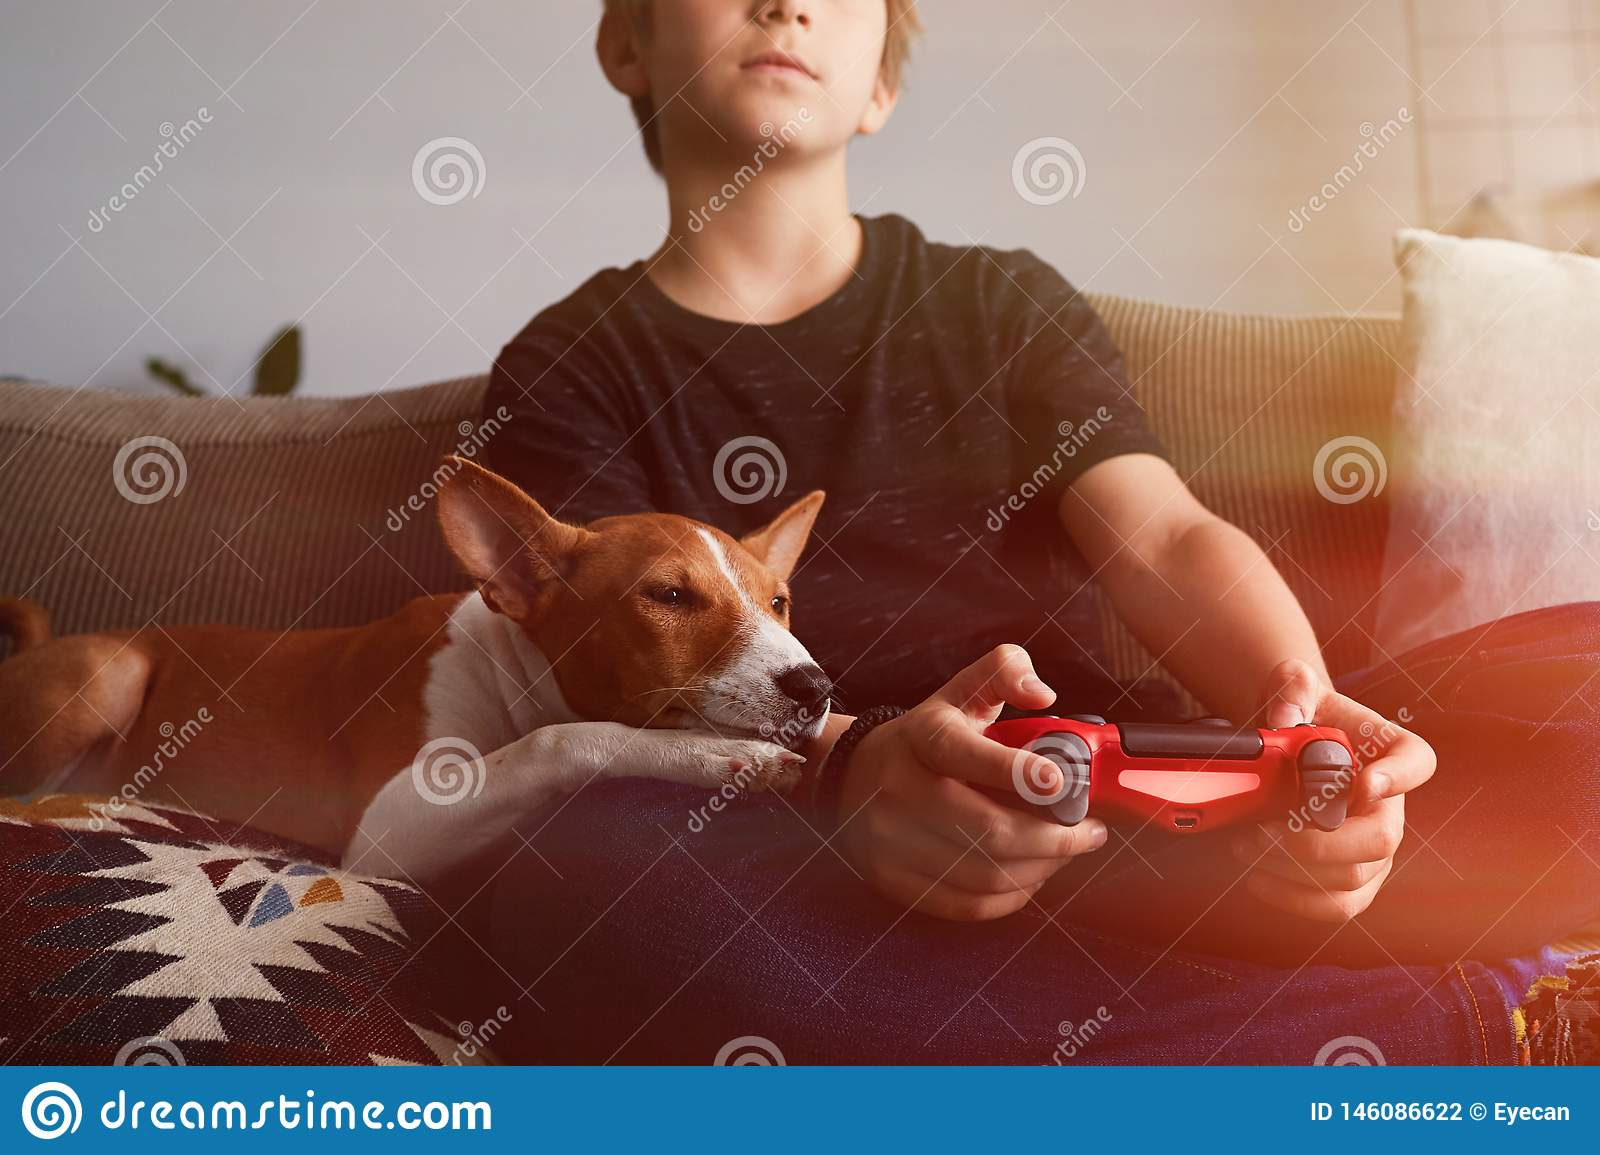 Little Cute Boy Playing Video Game Console Seated On A Sofa With Basenji Dog Puppy Close In Living Room At Home Stock Photo Image Of Controller Play 146086622